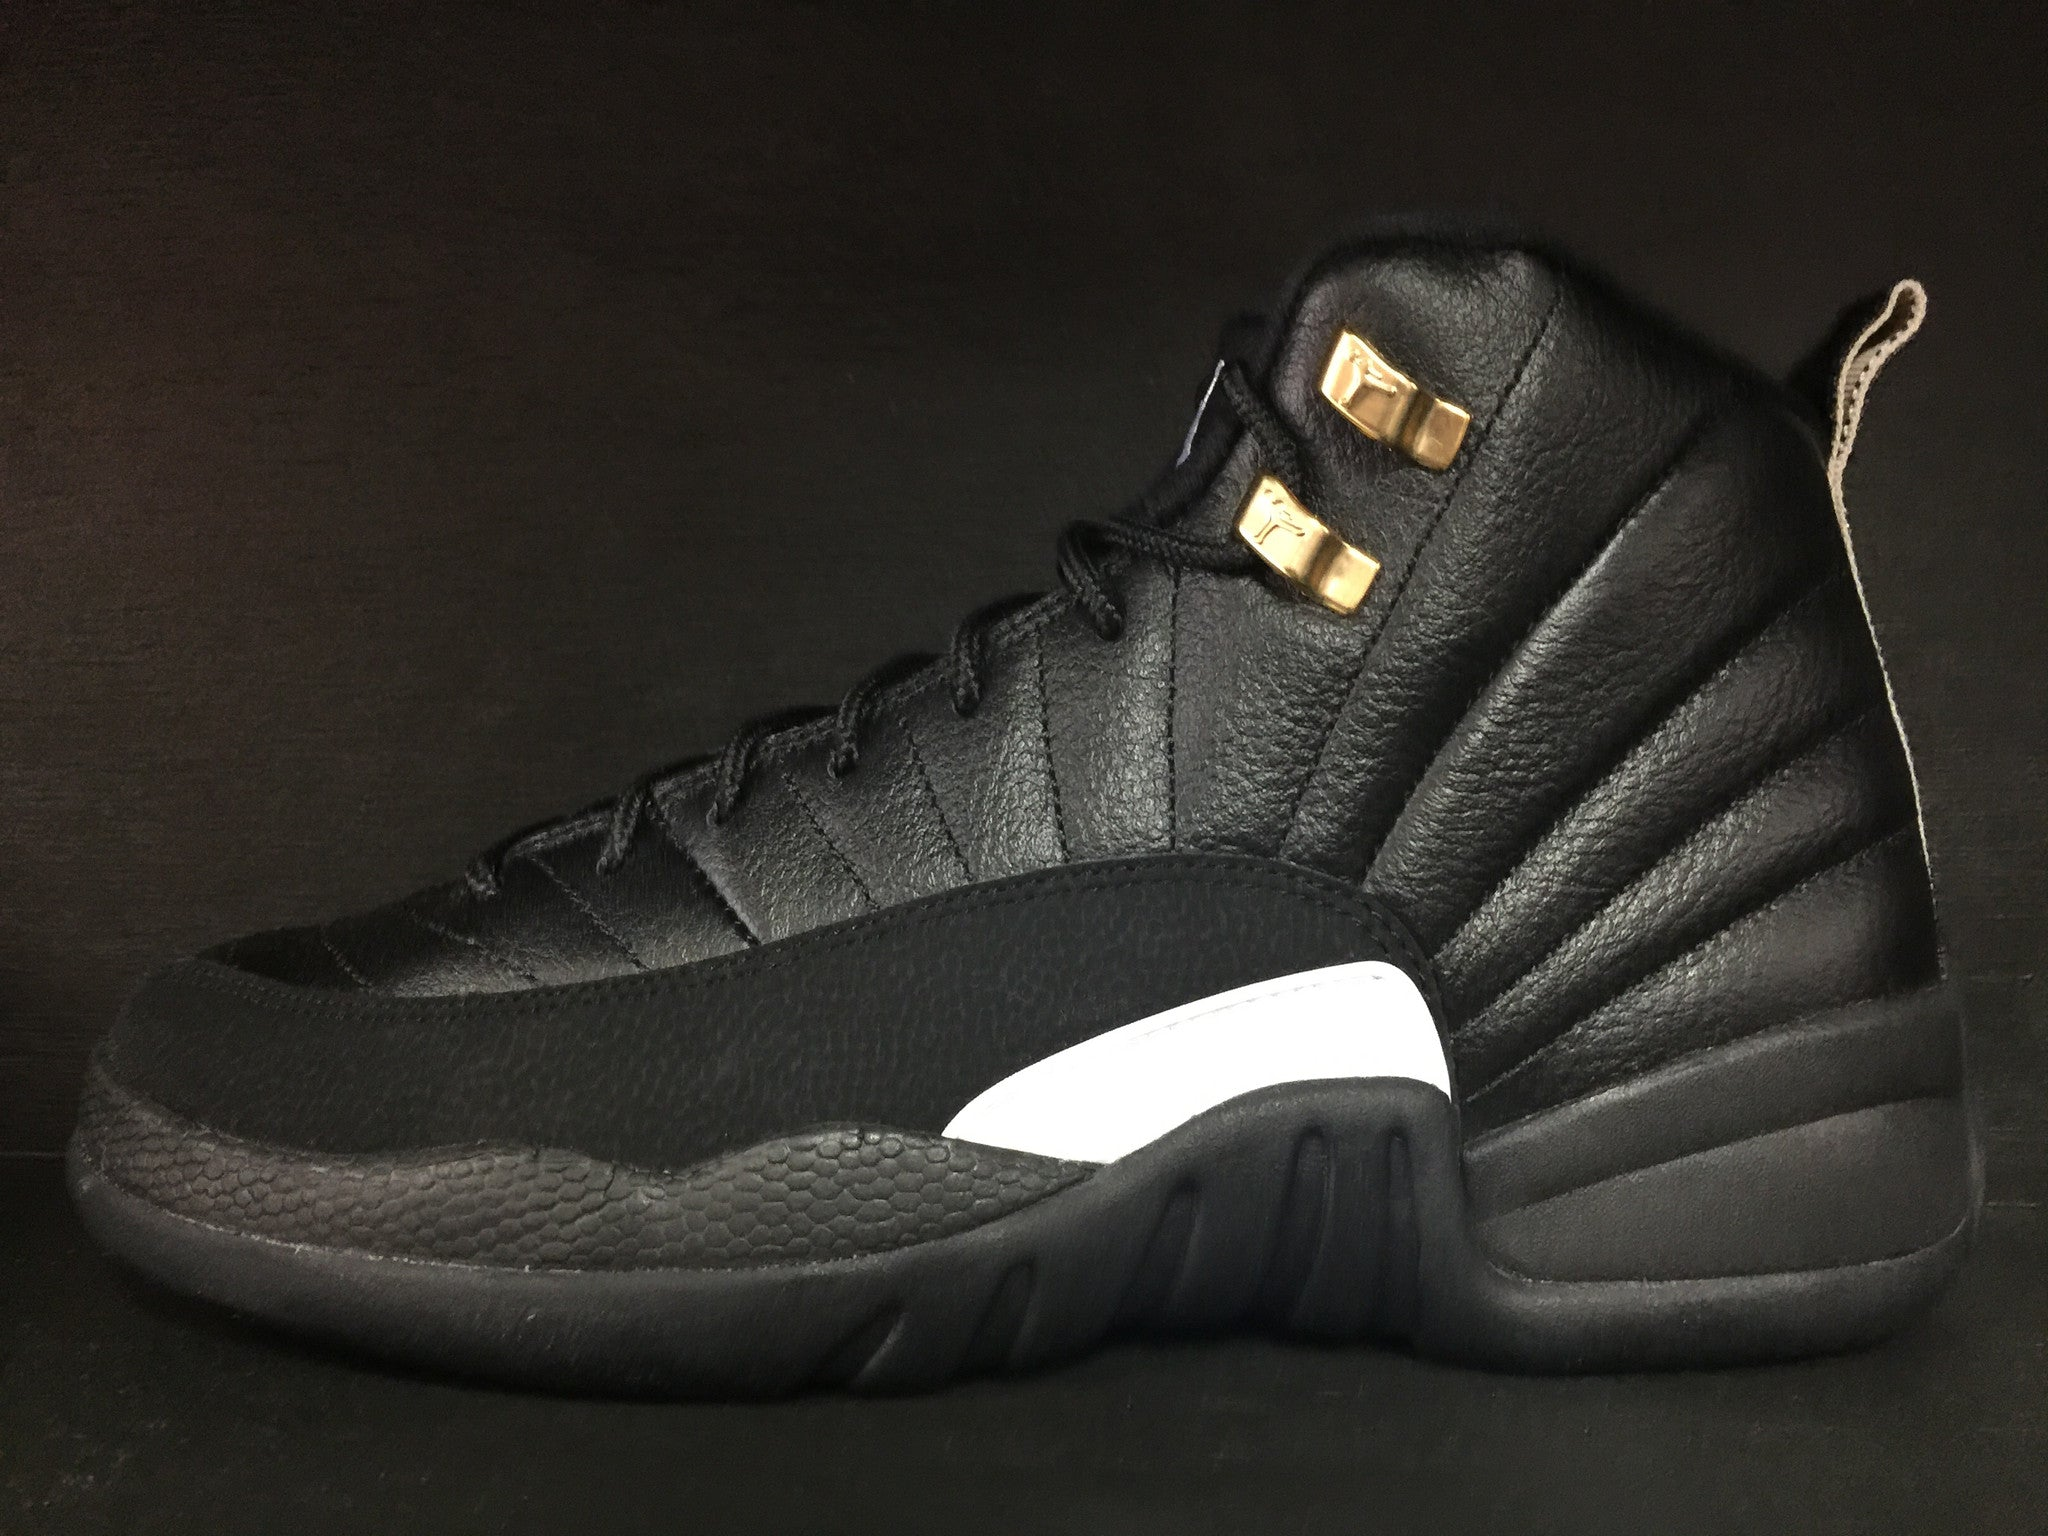 Air Jordan 12 Retro 'The Master' Grade School